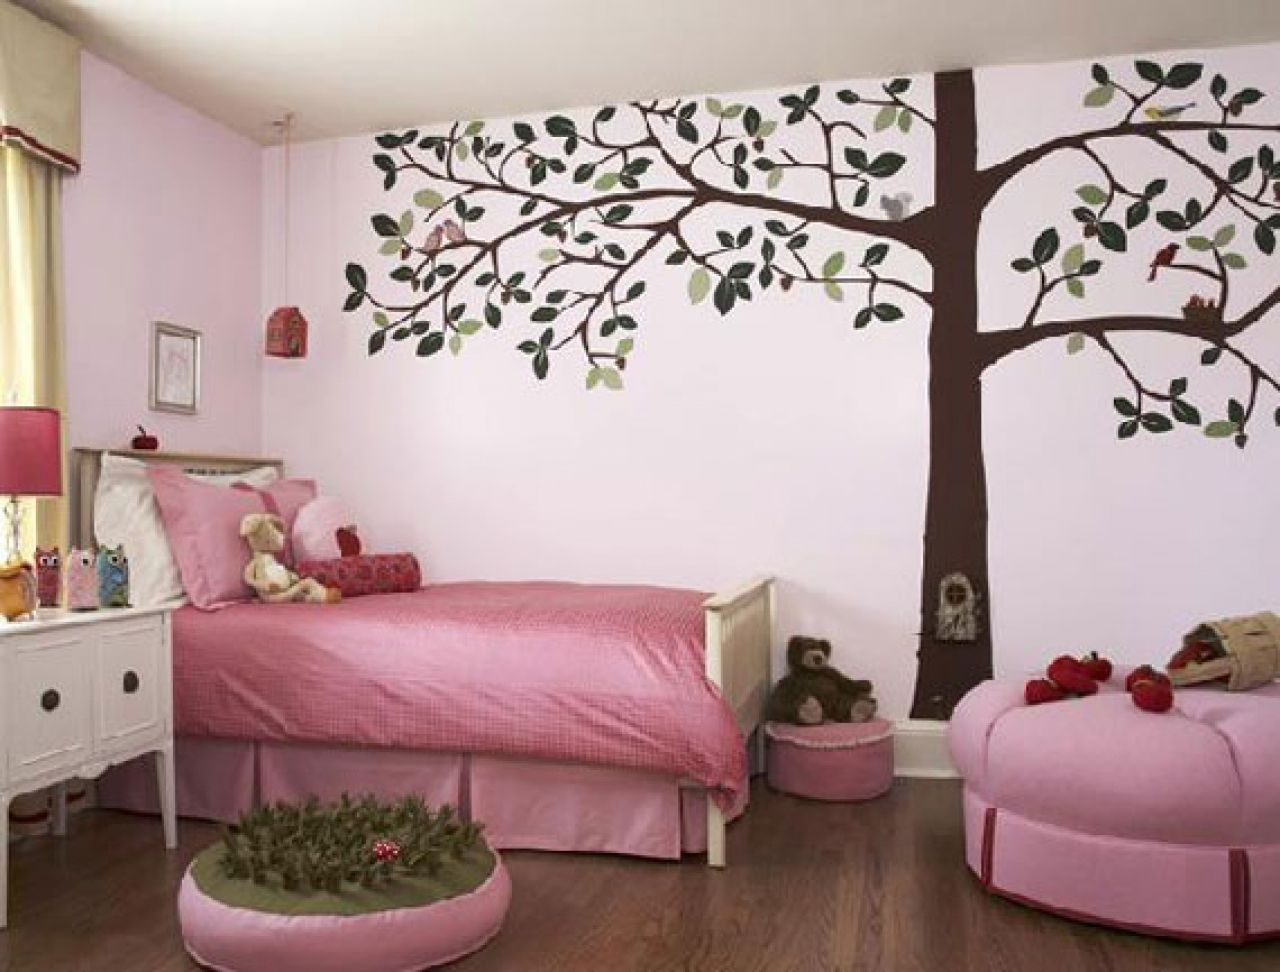 pink themed awesome kids wall decor ideas with brown tree shaped